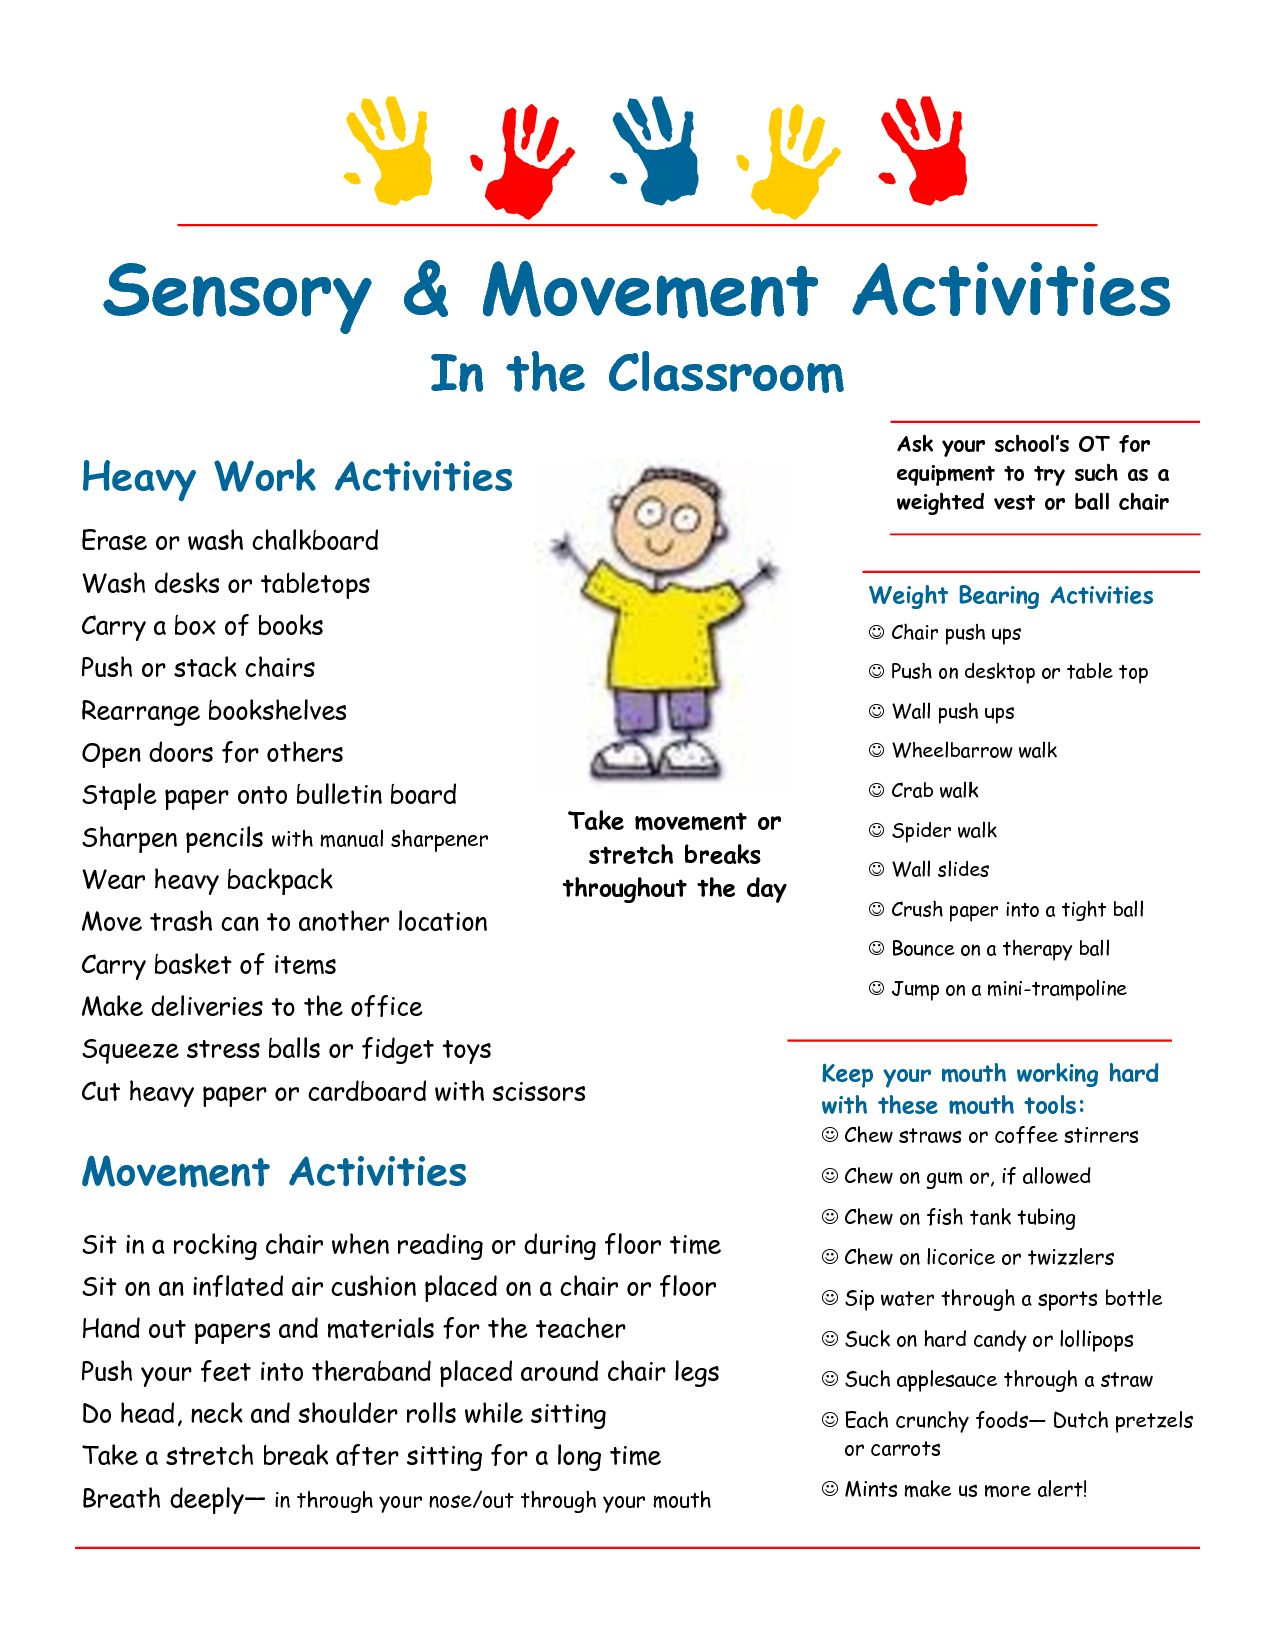 Sensory Strategies Amp Heavy Work Suggestions For The Classroom